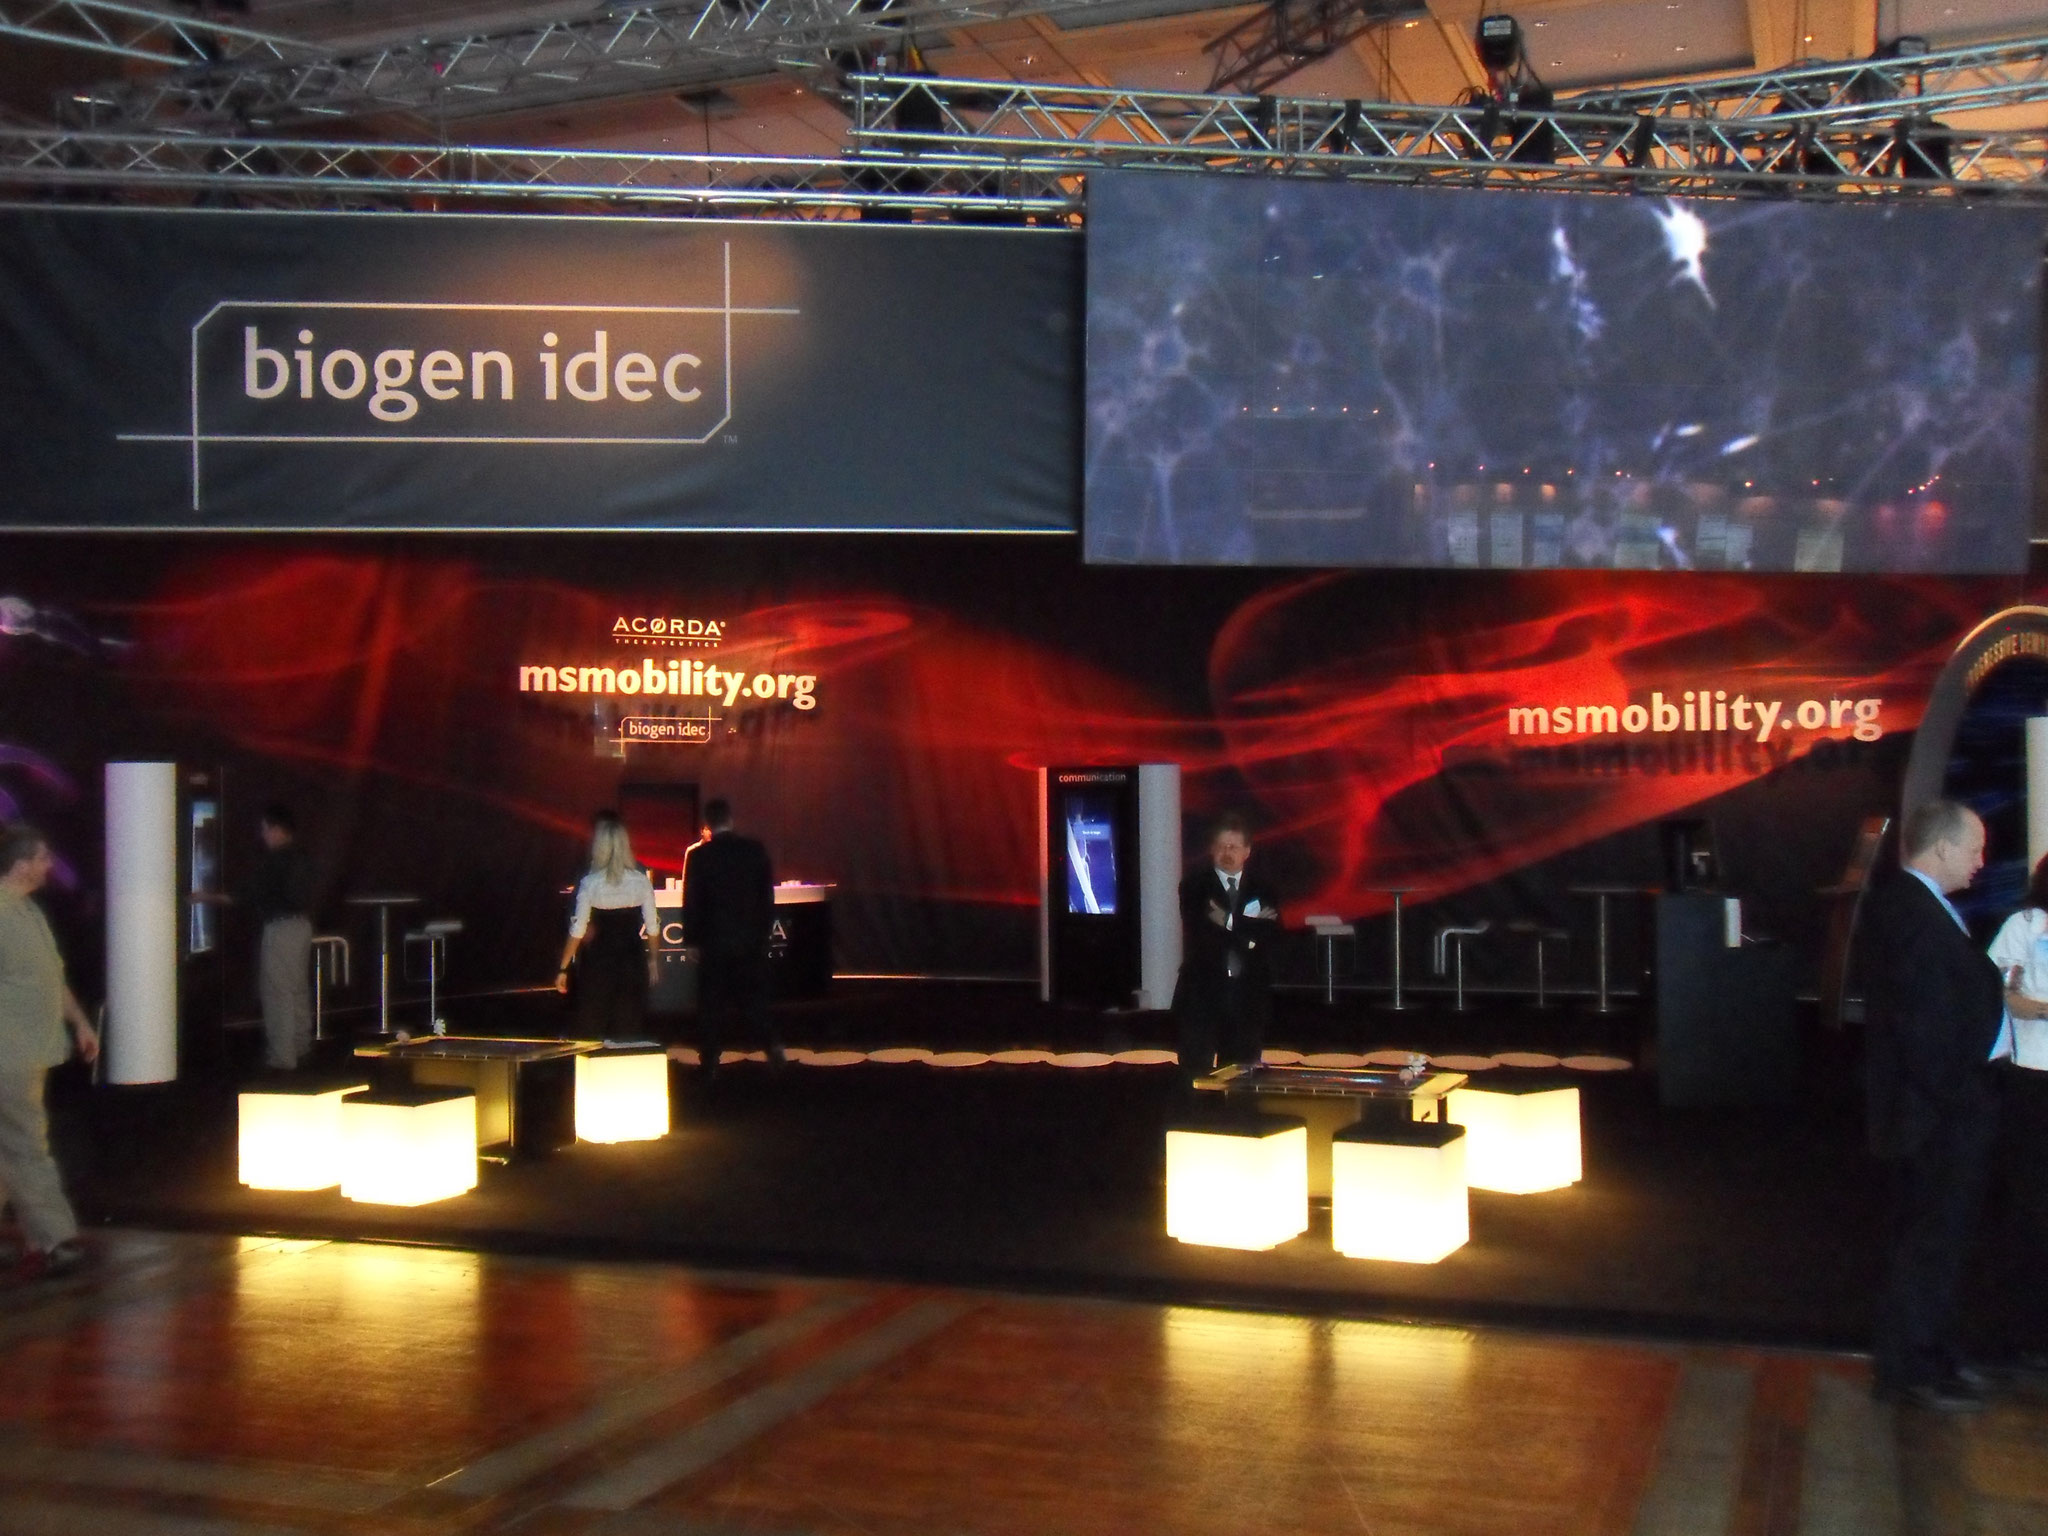 Dusseldorf Congress Center - Lighting - Rigging - Varilite - Seamless MPDP